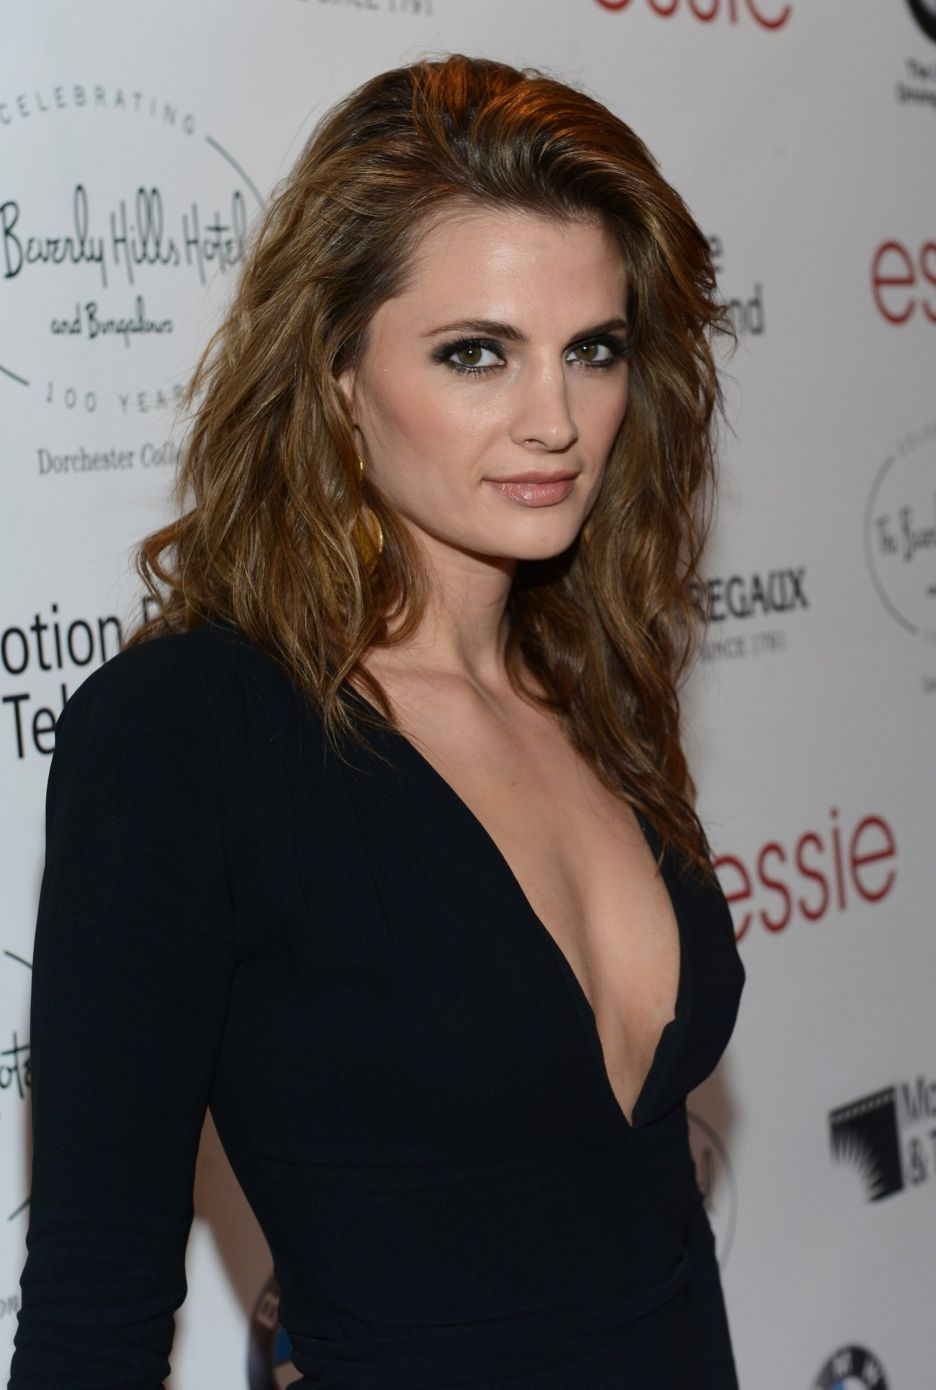 Celebrites Stana Katic nude photos 2019